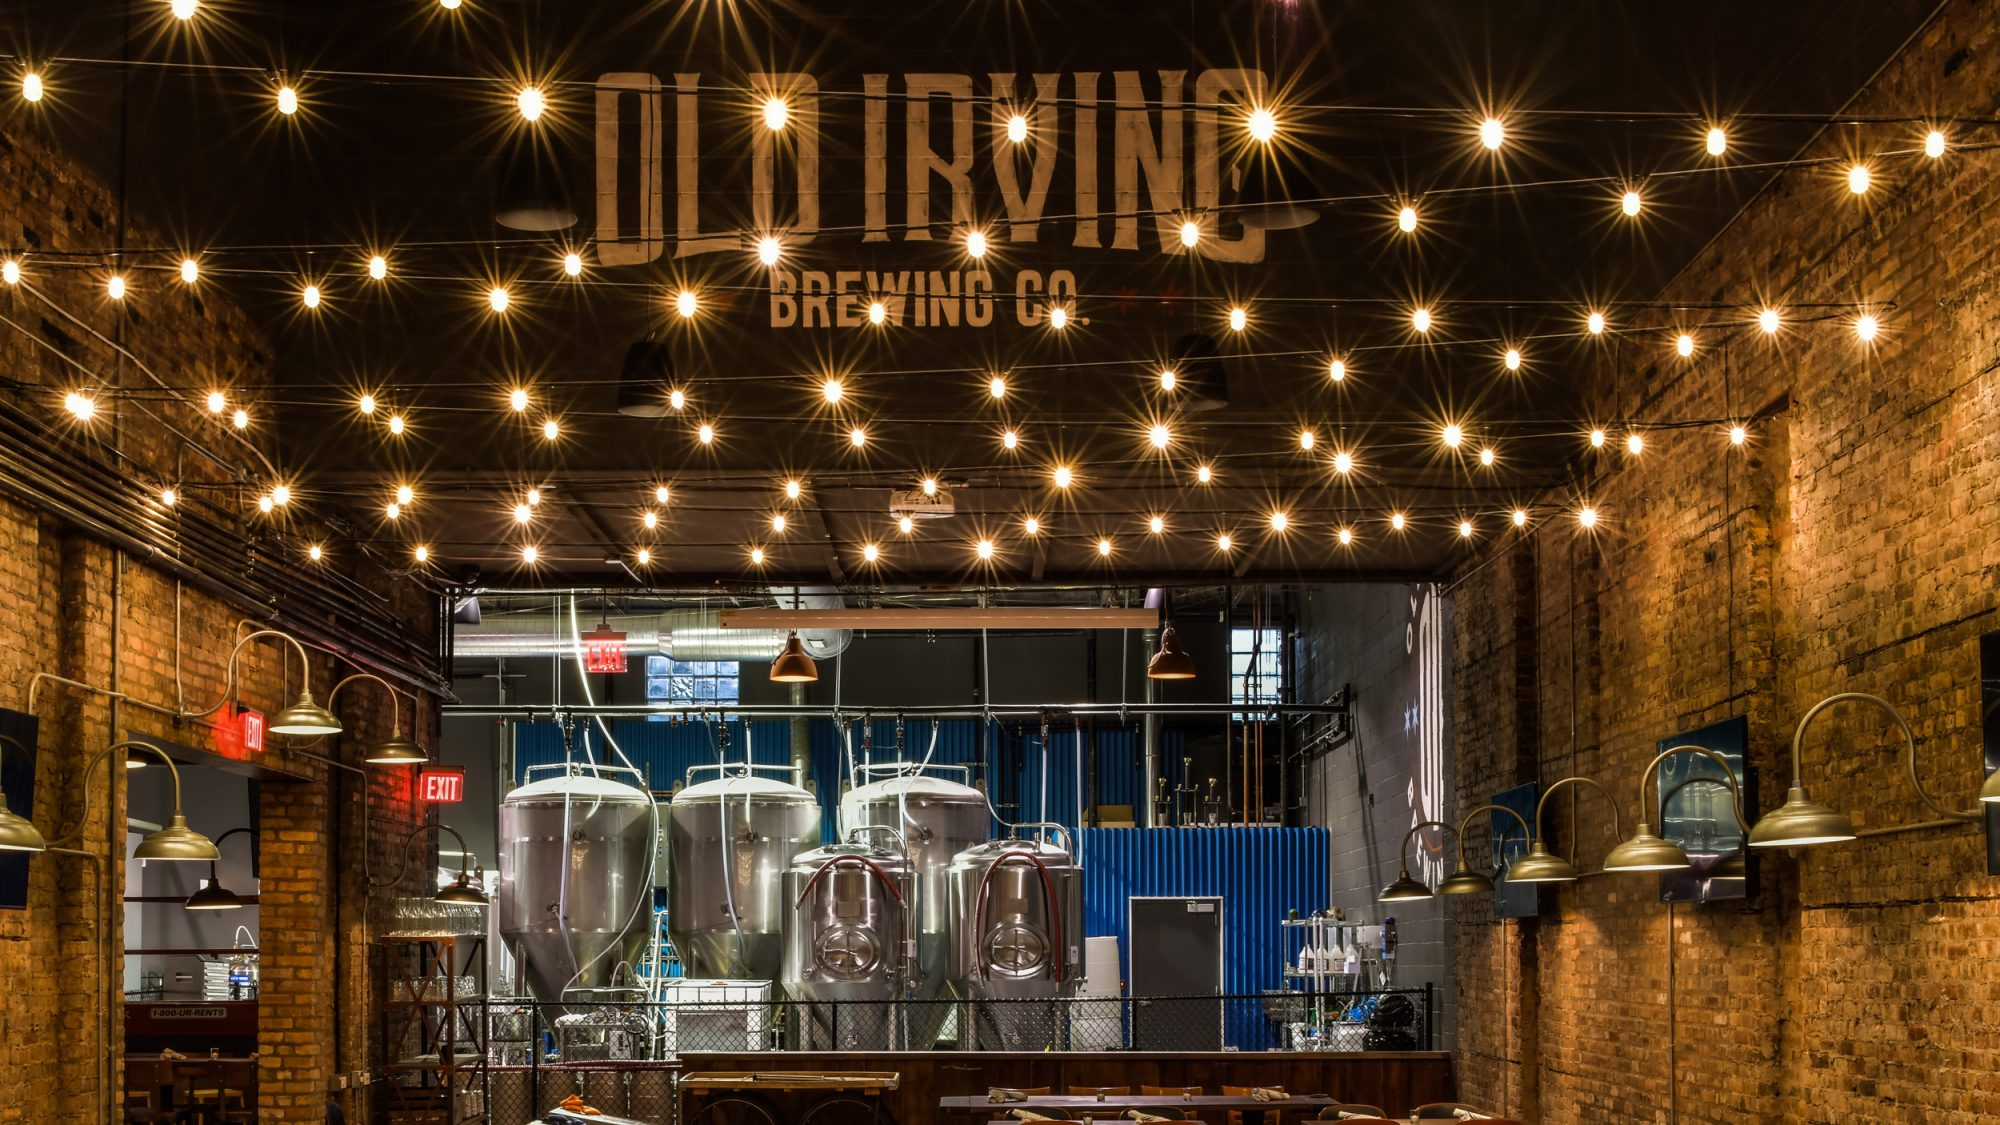 Old Irving Brewing